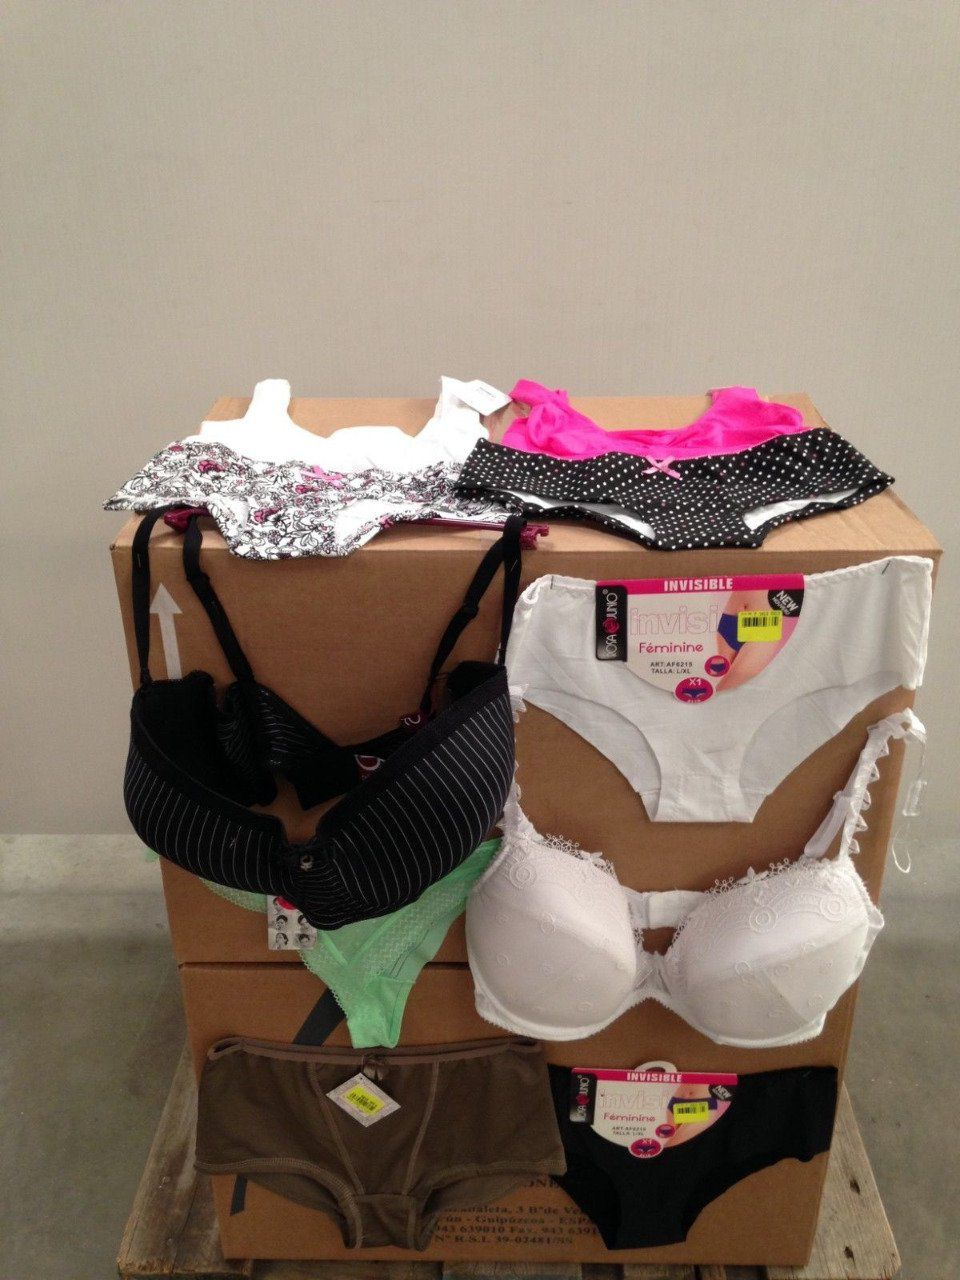 Lot revendeur/déstockage 200 articles lingerie femme   - Copie